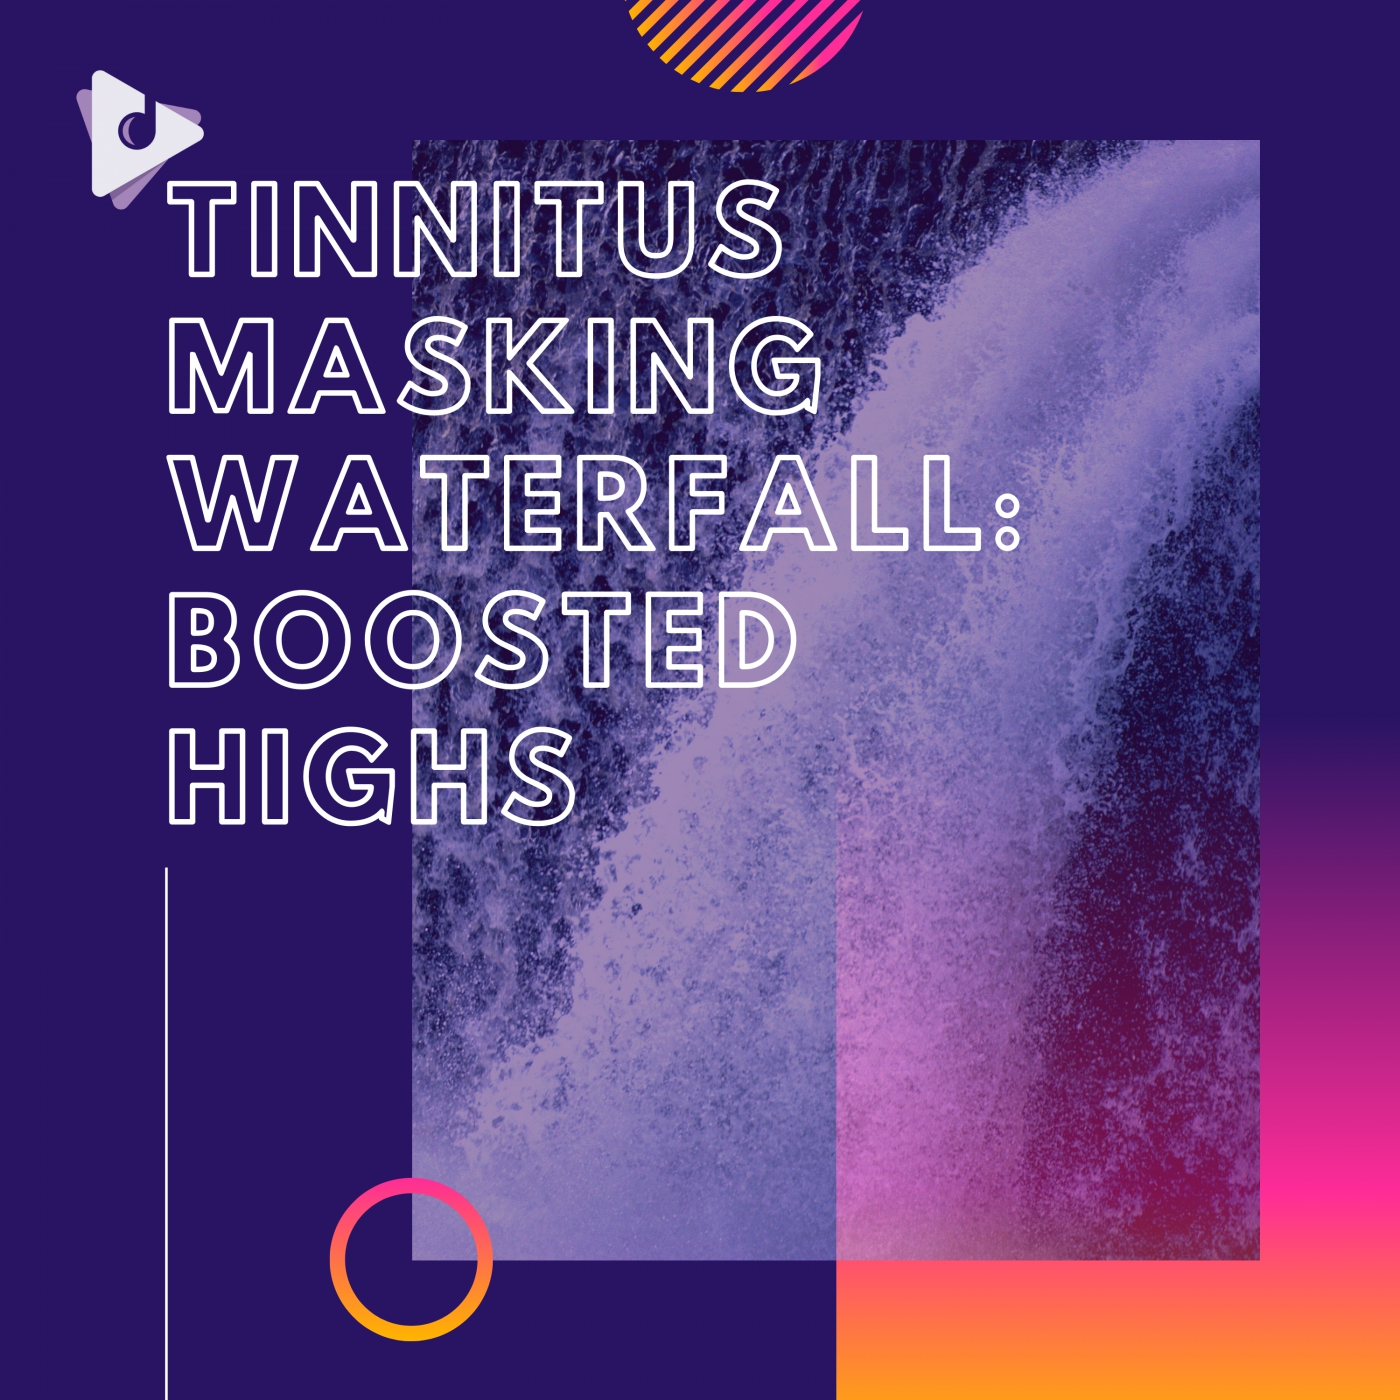 Tinnitus Masking Waterfall: Boosted Highs